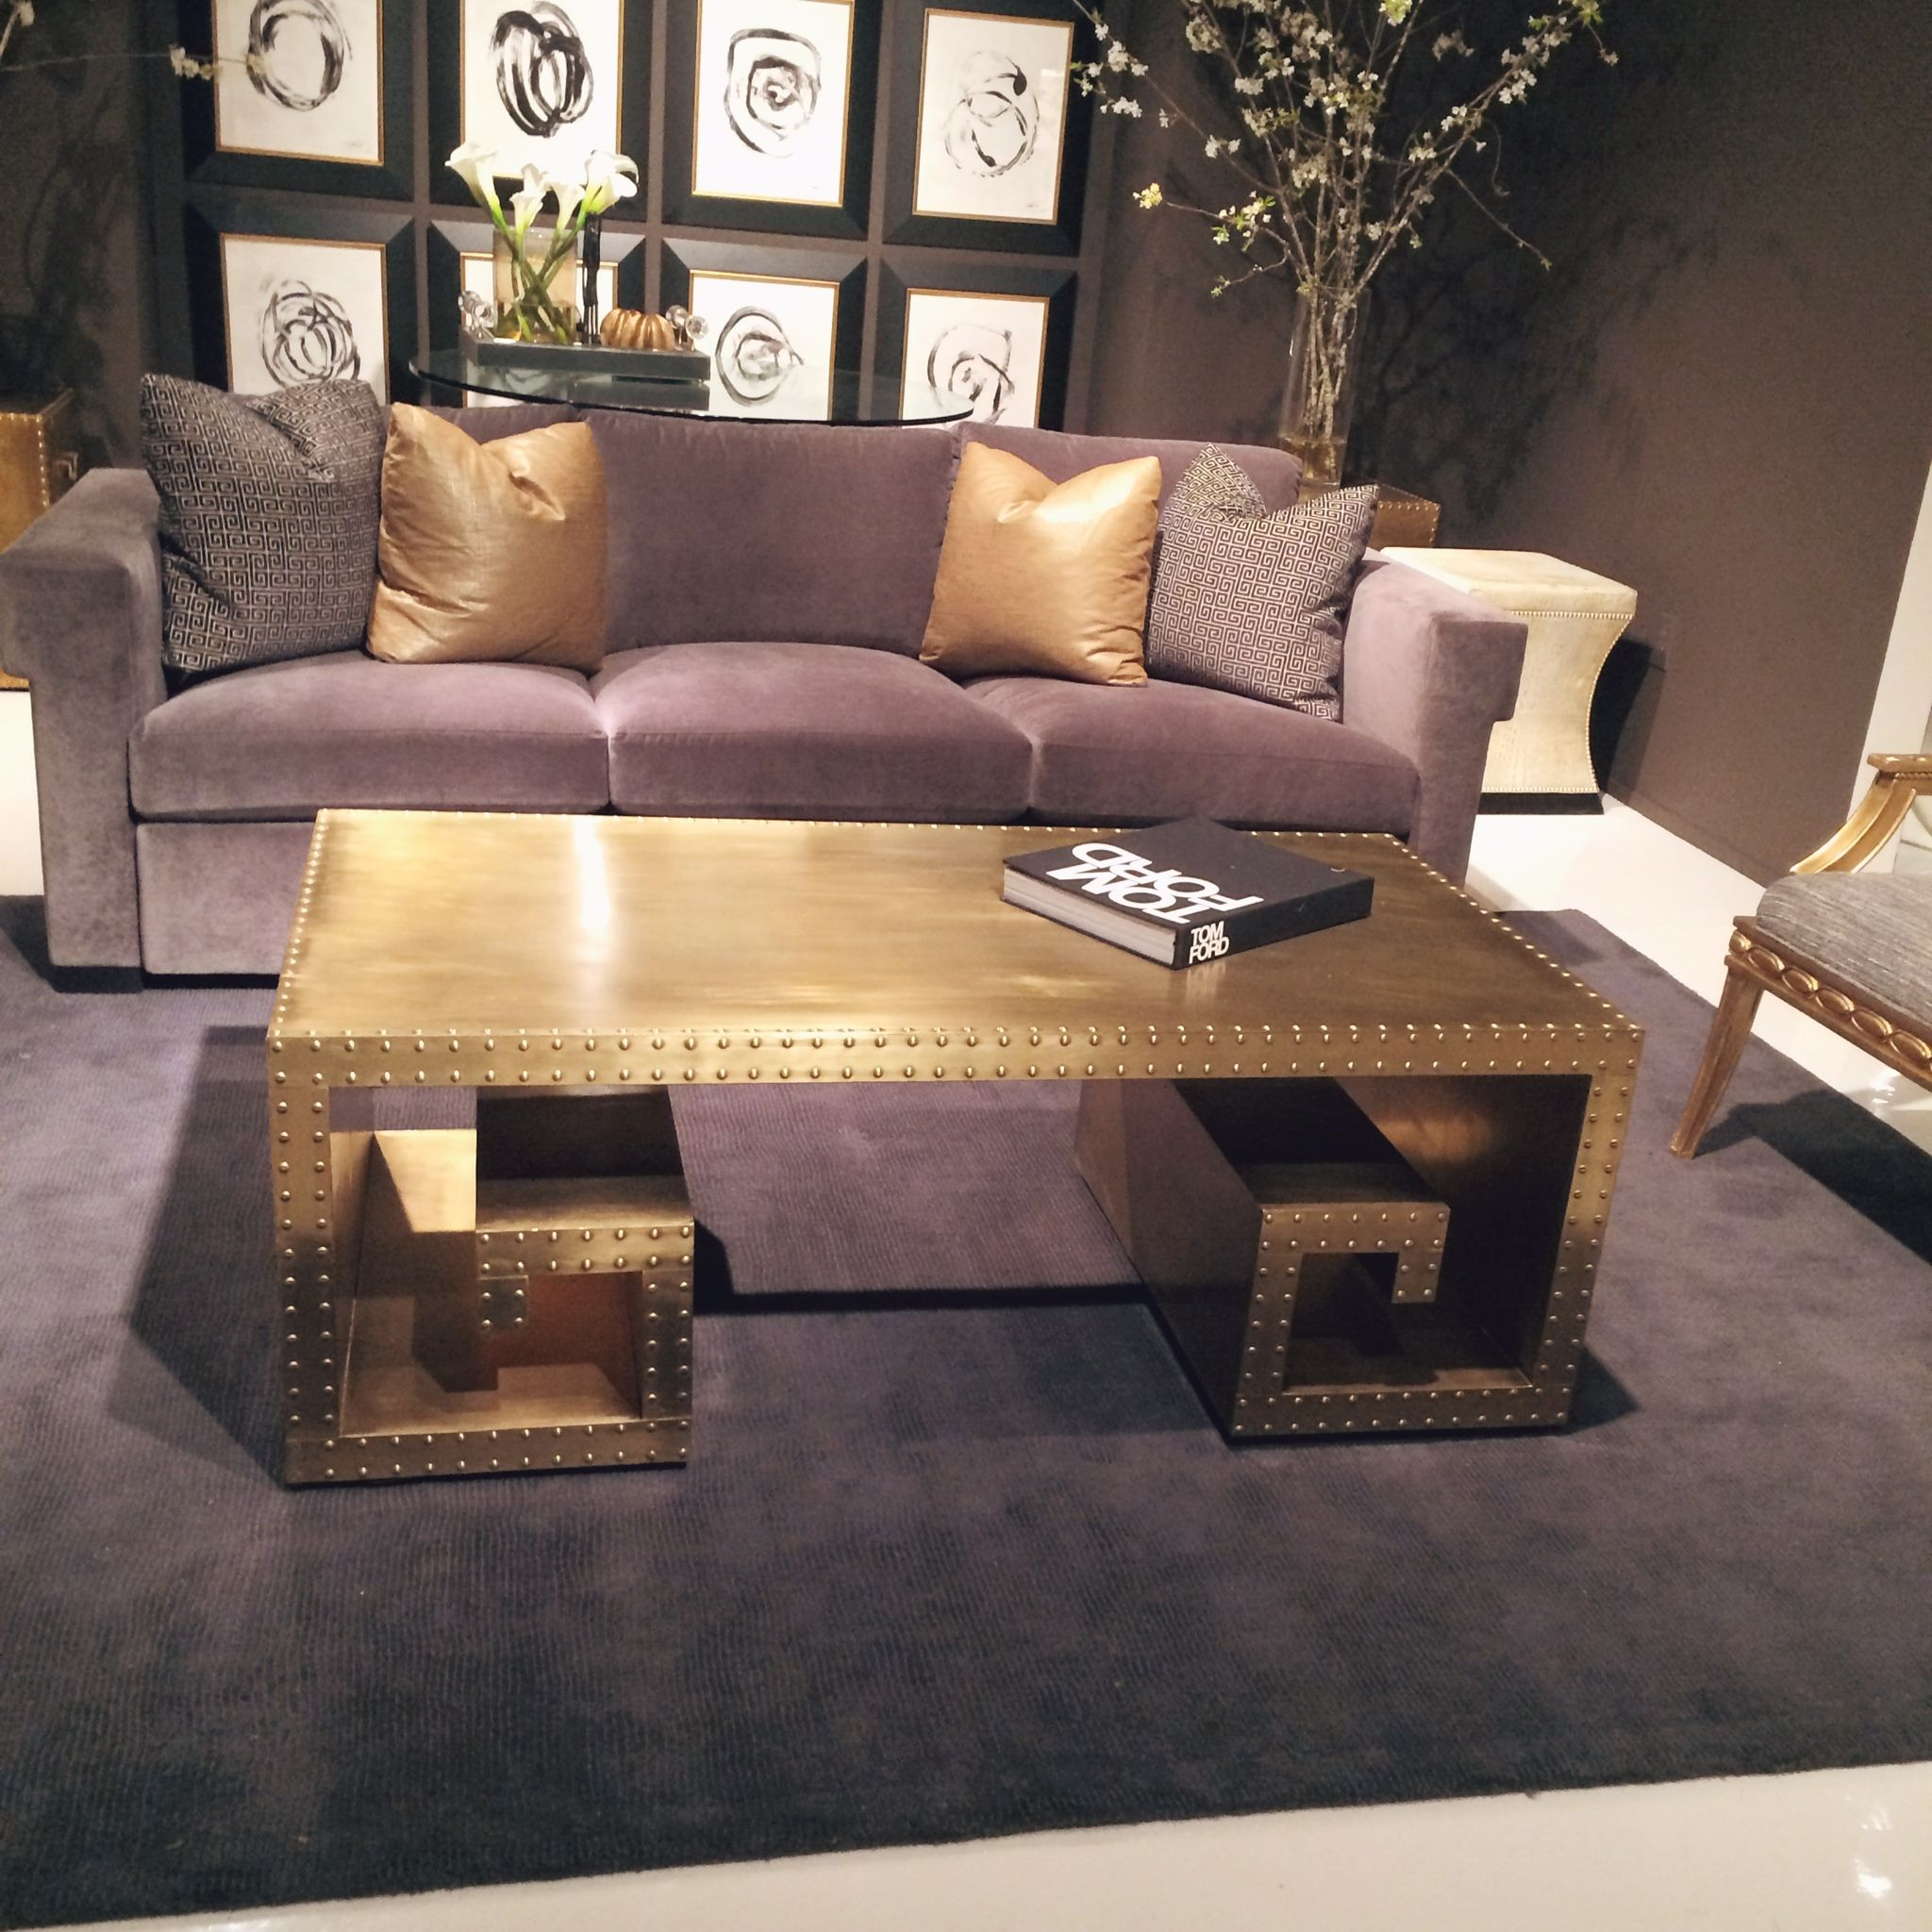 This riveted brass greek key coffee table at bernhardt furniture this riveted brass greek key coffee table at bernhardt furniture is fabulous spotted lots of geotapseo Gallery